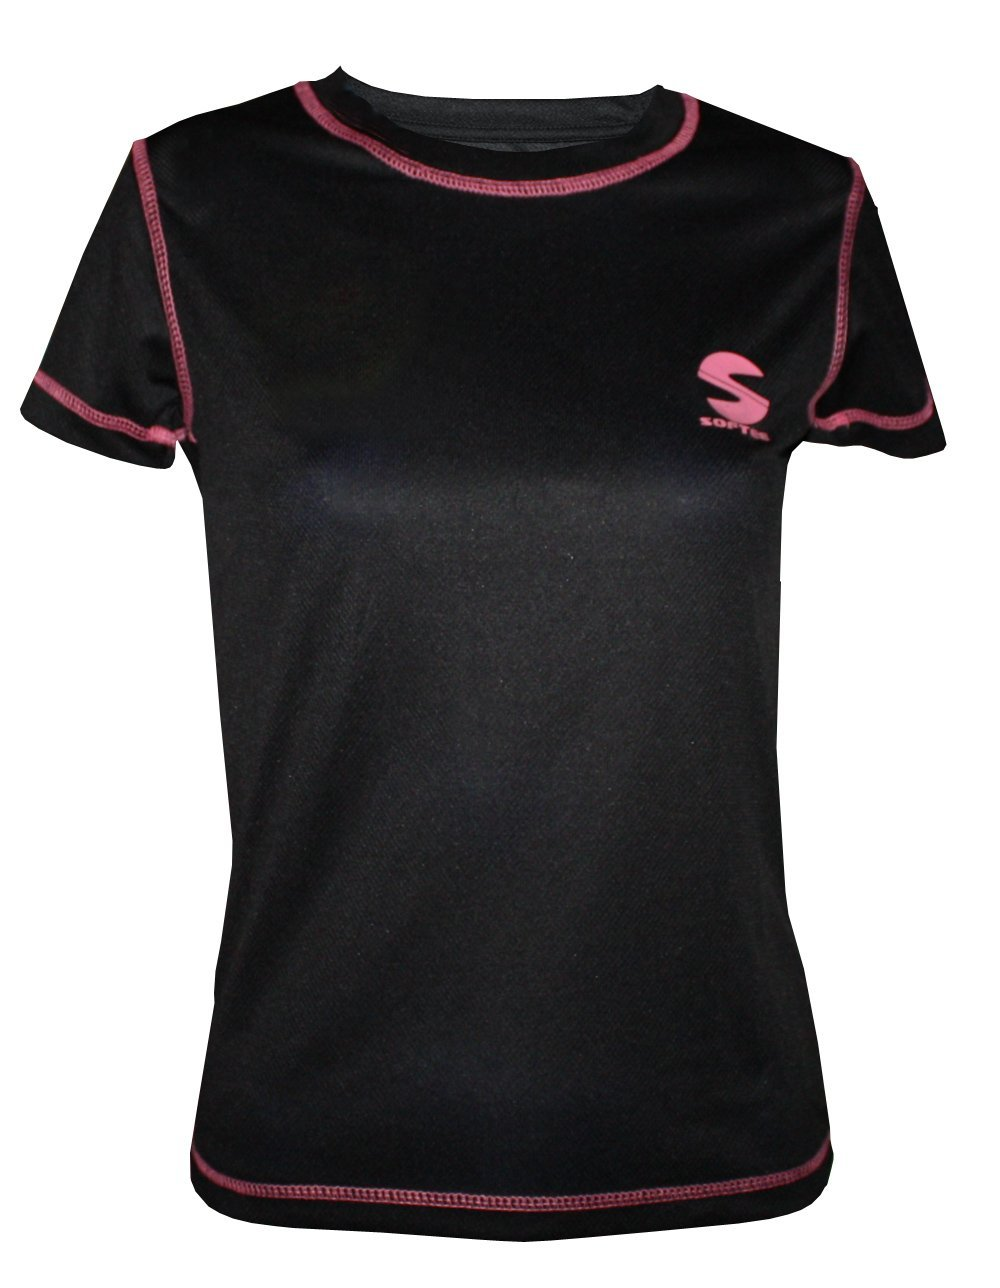 Camiseta Padel Softee Revel Mujer Negro Fucsia: Amazon.es ...